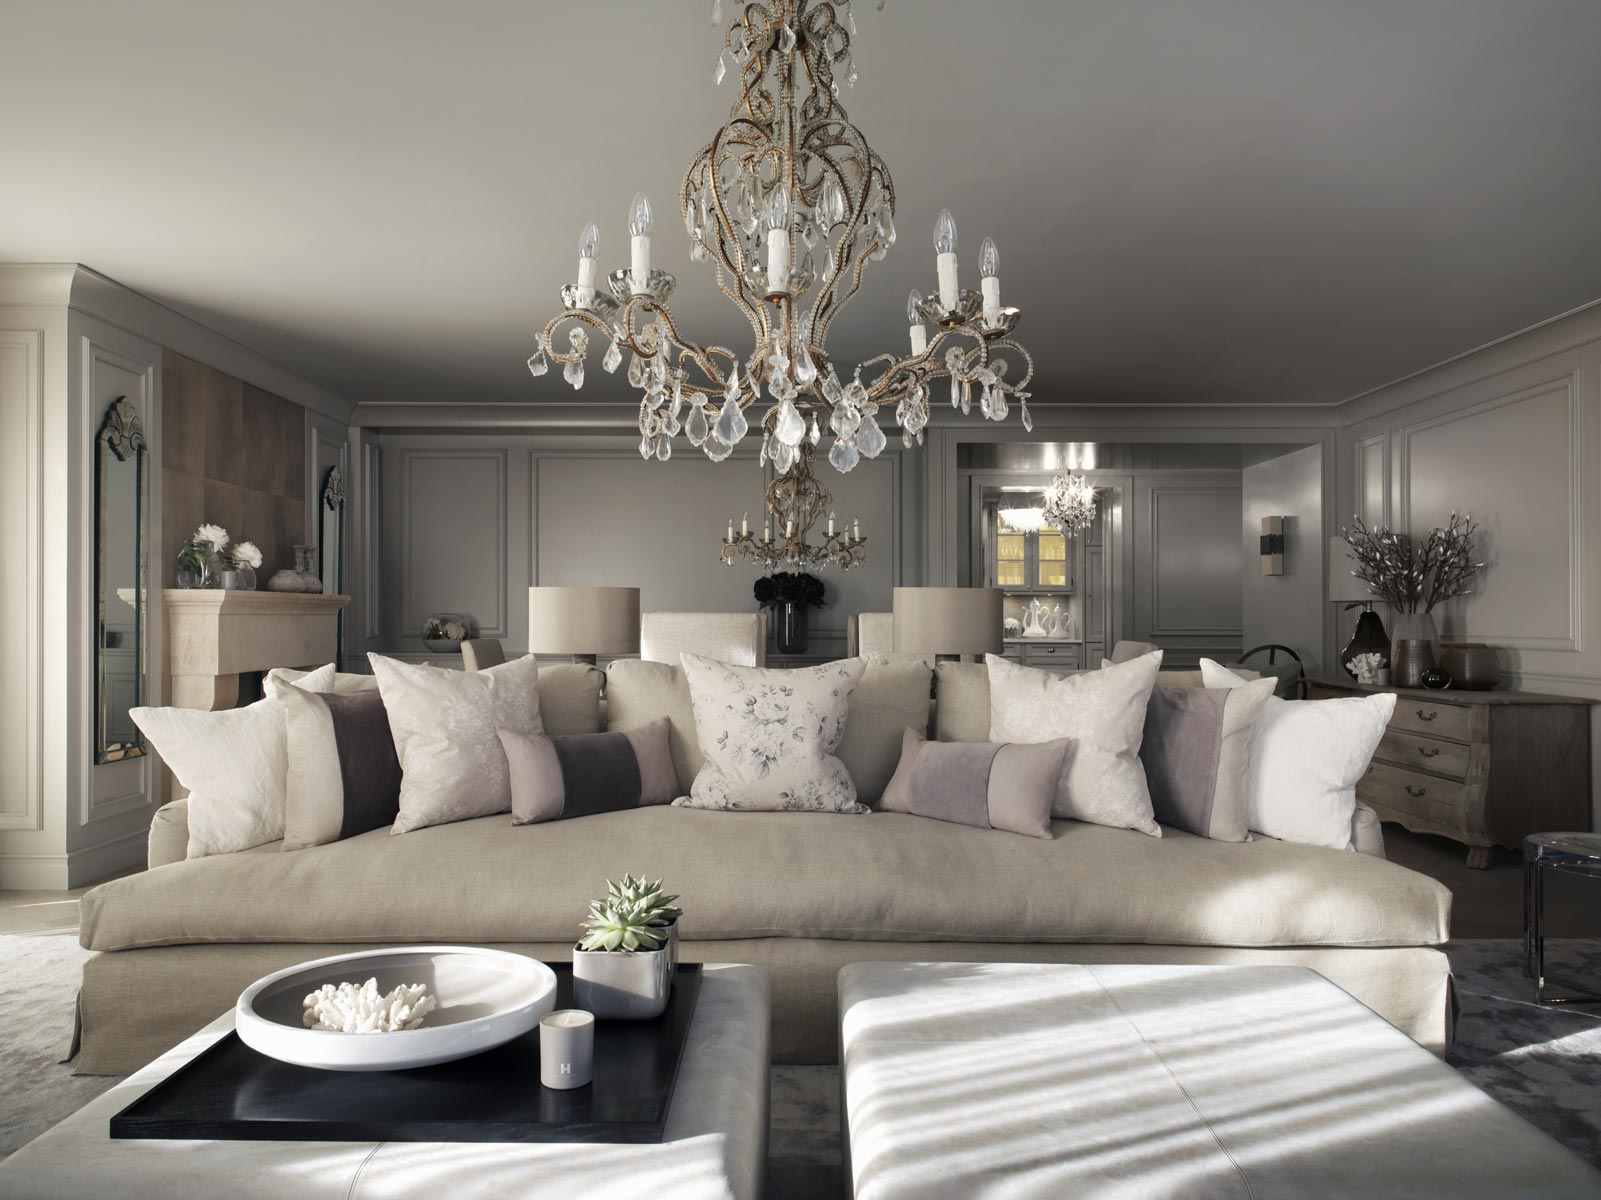 Top 10 kelly hoppen design ideas for Z gallerie living room inspiration